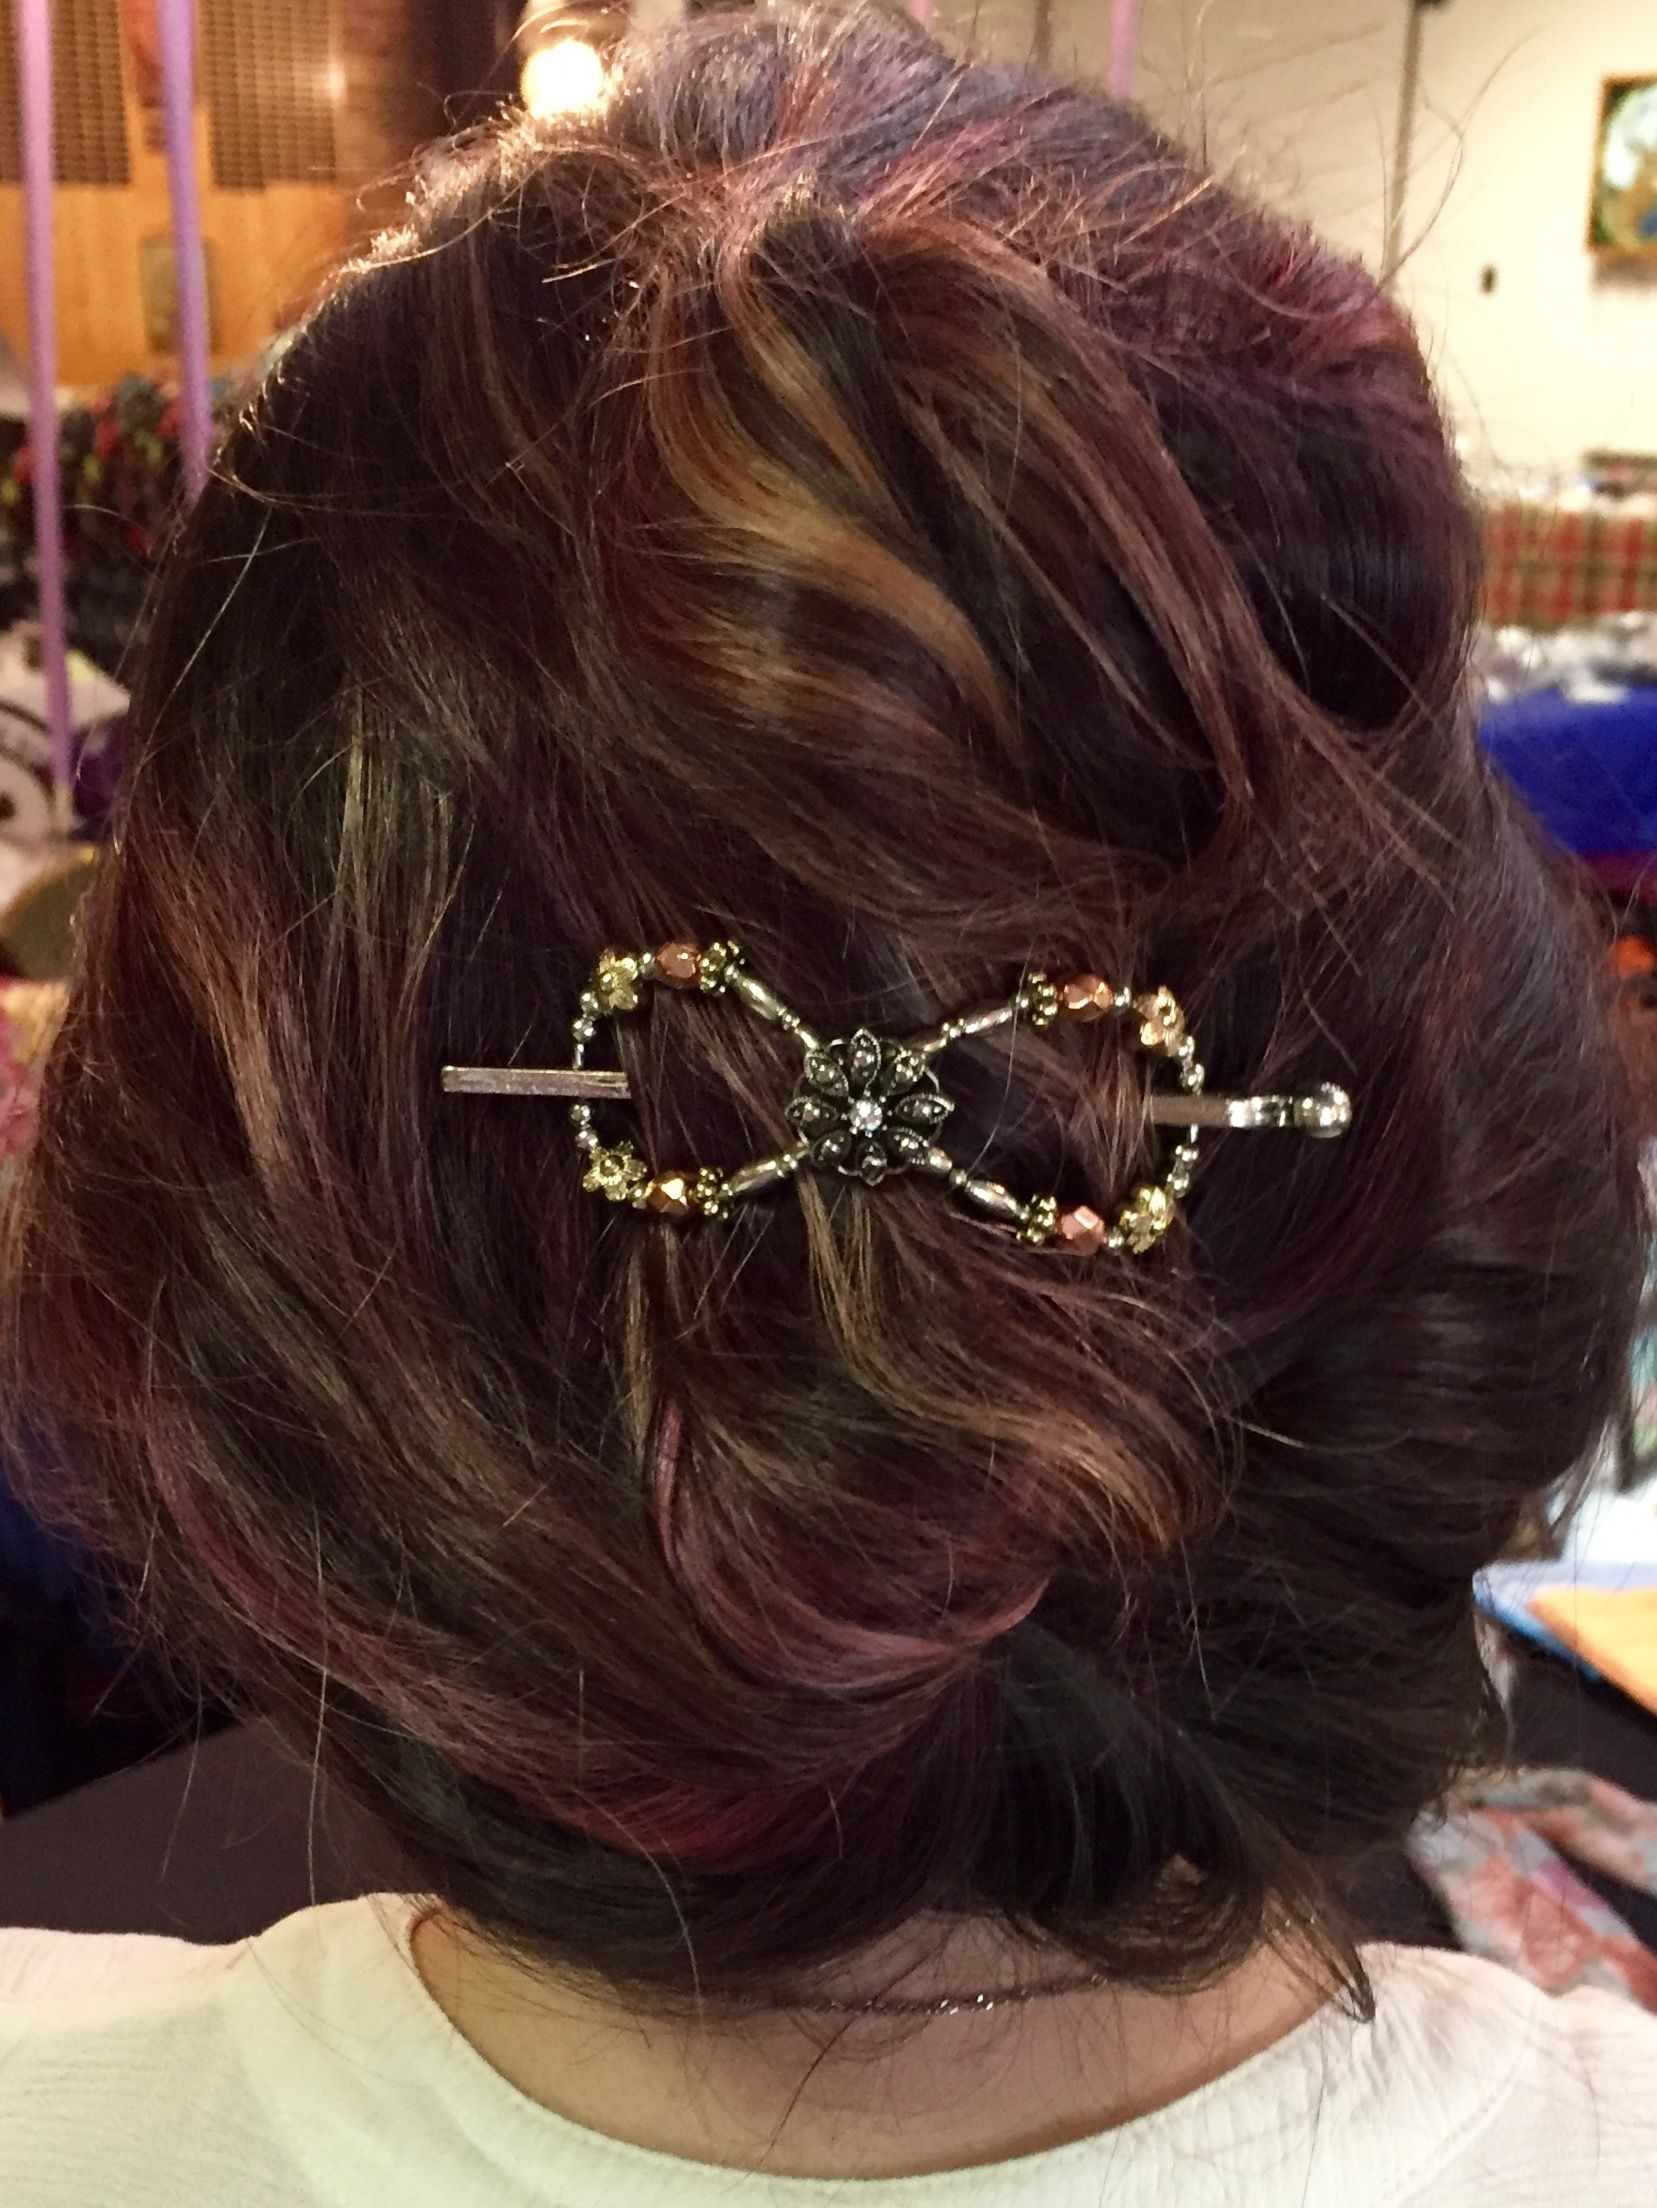 Mixed Metals flexi clip with silver, gold, and copper. The blend of colors really compliment the rose and gold highlights in her hair. She glows in Lilla Rose!